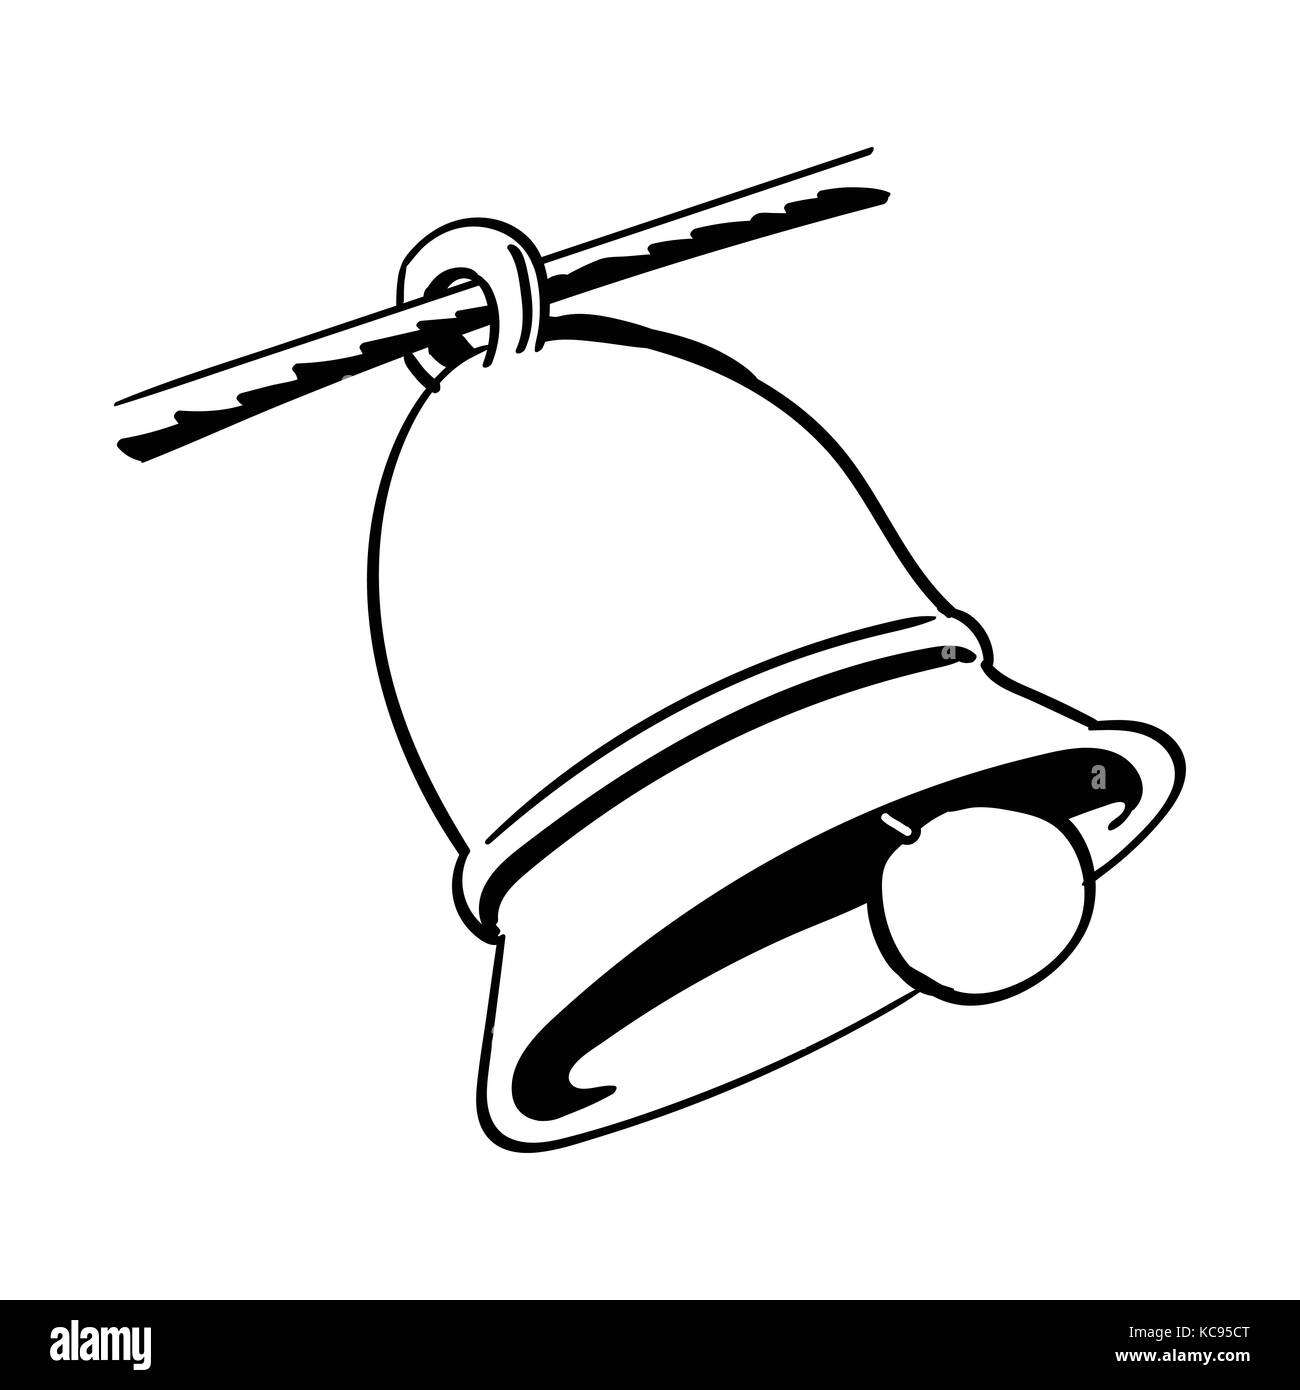 Hand Drawing Of A Bell Isolated On White Background Black And Simple Line Vector Illustration For Coloring Book